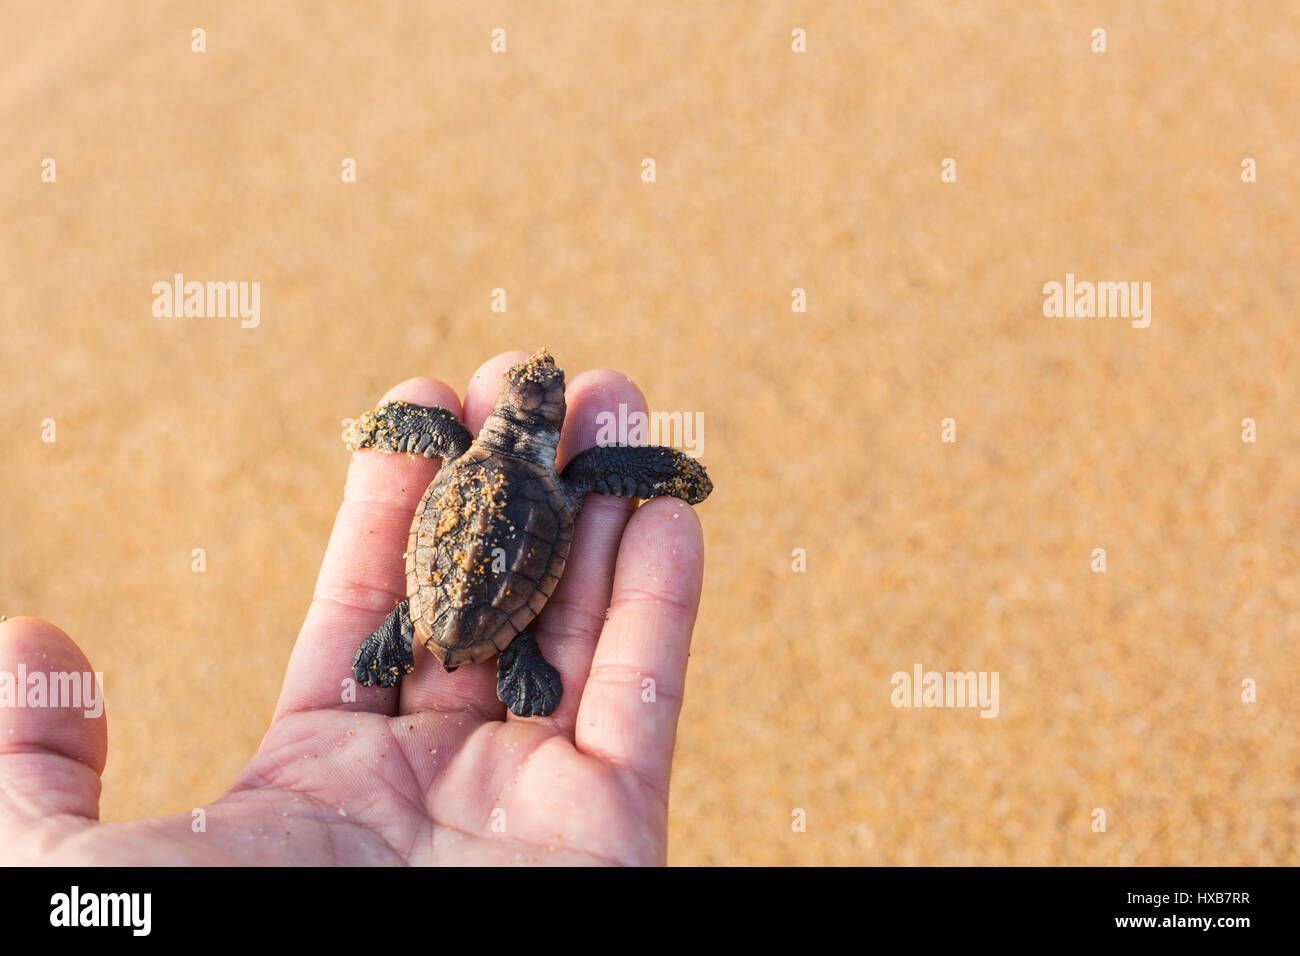 Baby loggerhead turtle (Caretta caretta) held in a person's hand.   Mon Repos Conservation Park, Bundaberg, - Stock Image